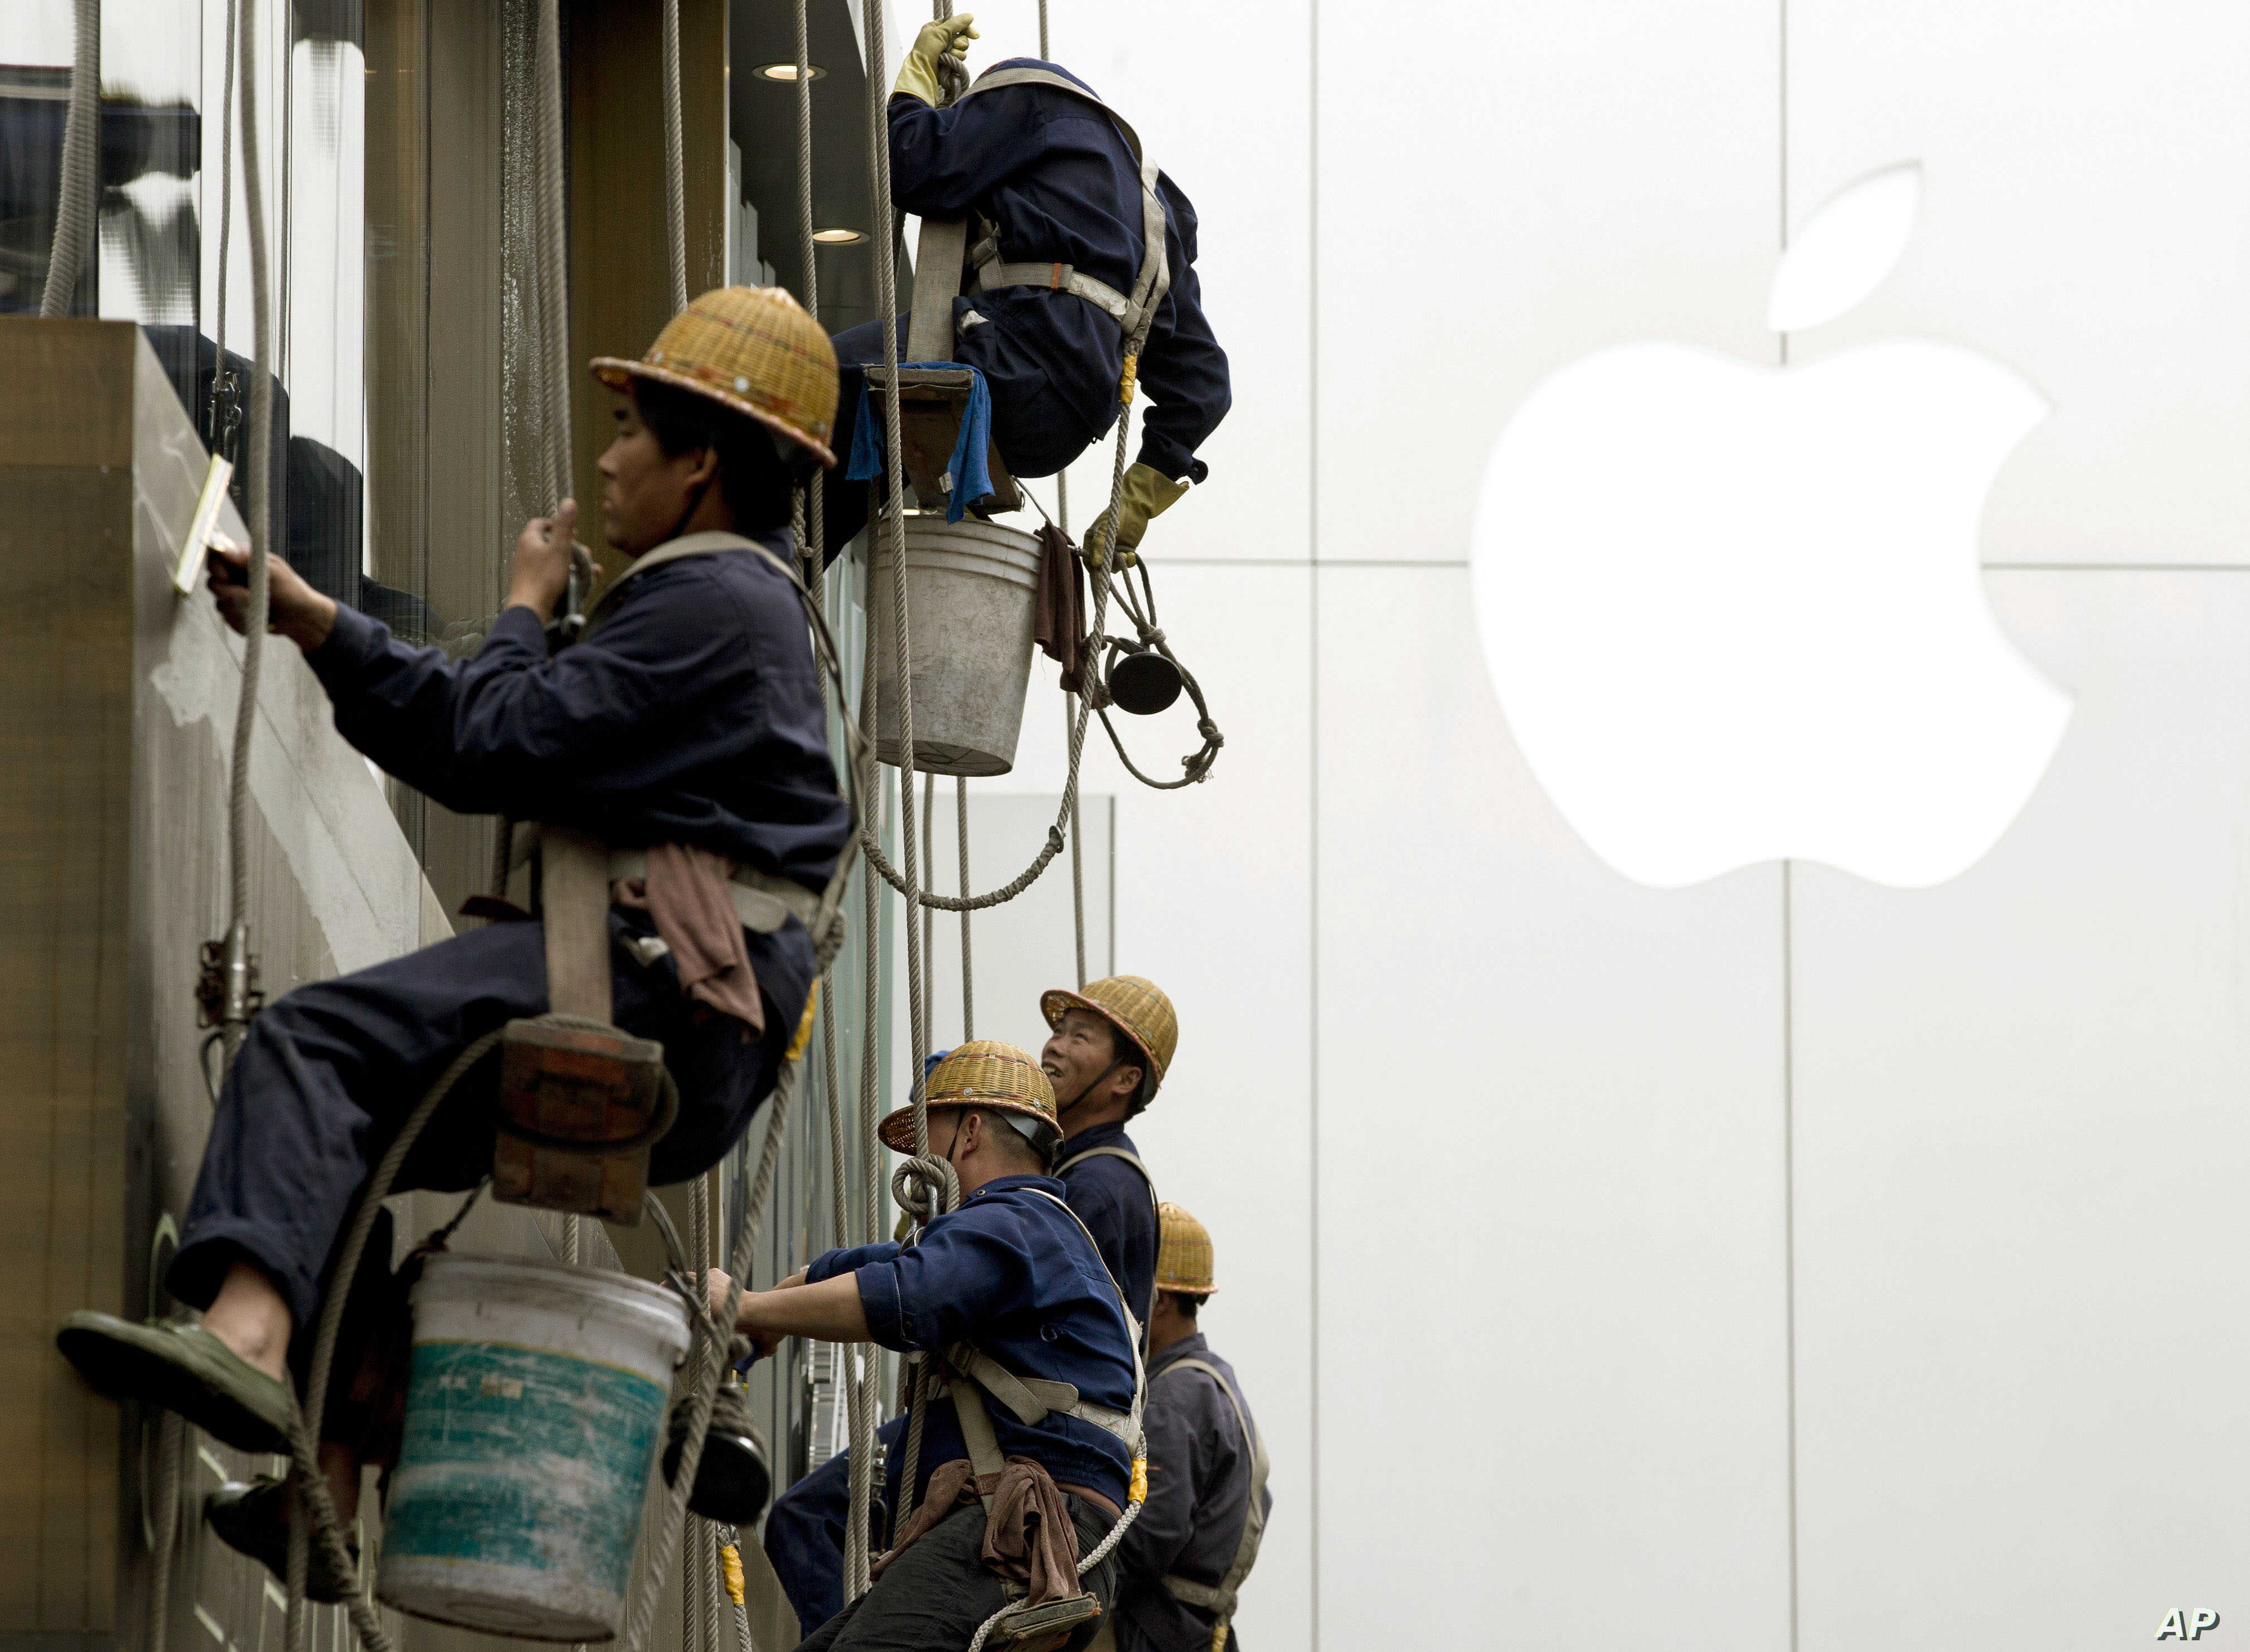 Workers clean windows near Apple's retail store in Beijing. China reported an unexpected contraction in exports in March, raising the danger of job losses as Beijing tries to overhaul its slowing economy, April 10, 2014.